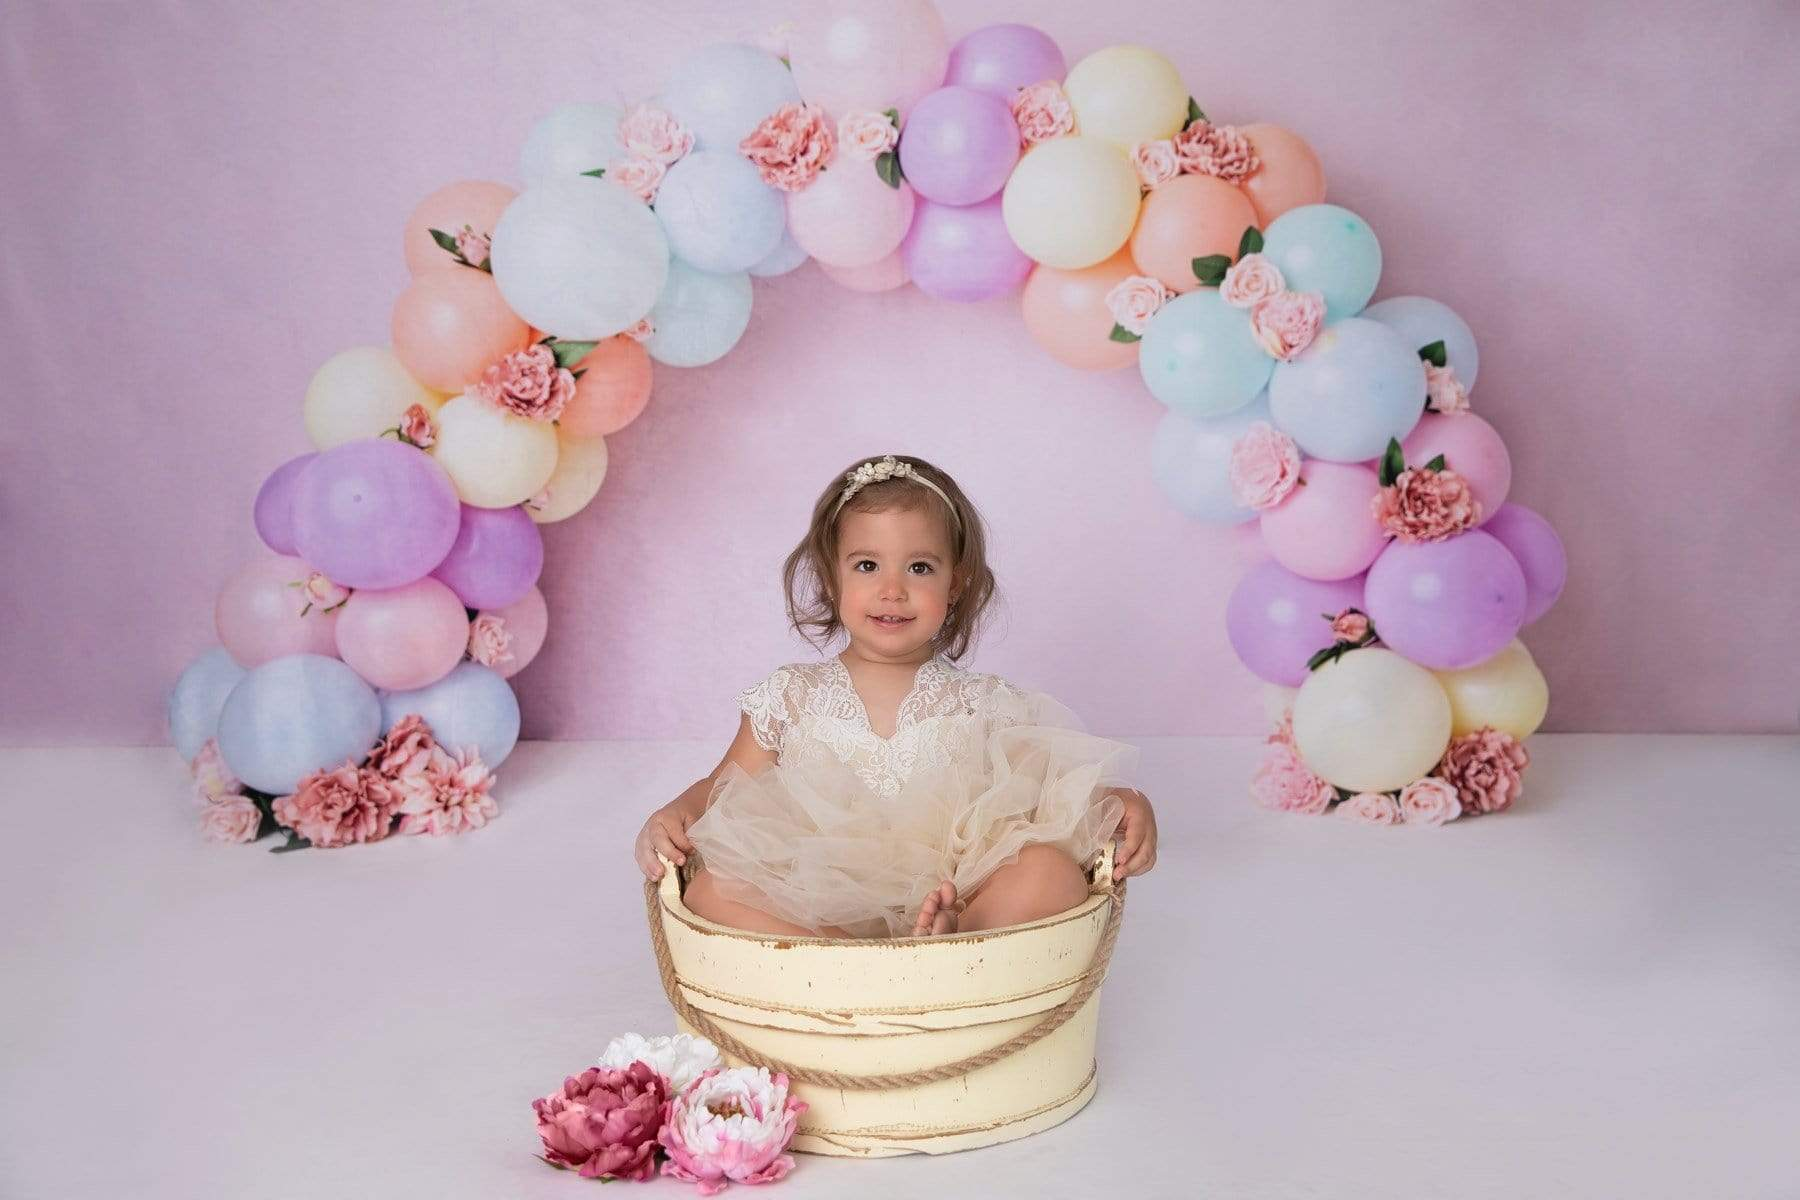 Load image into Gallery viewer, Katebackdrop£ºKate Balloons Rainbow with Flowers for Children Backdrop for Photography Designed by Kerry Anderson